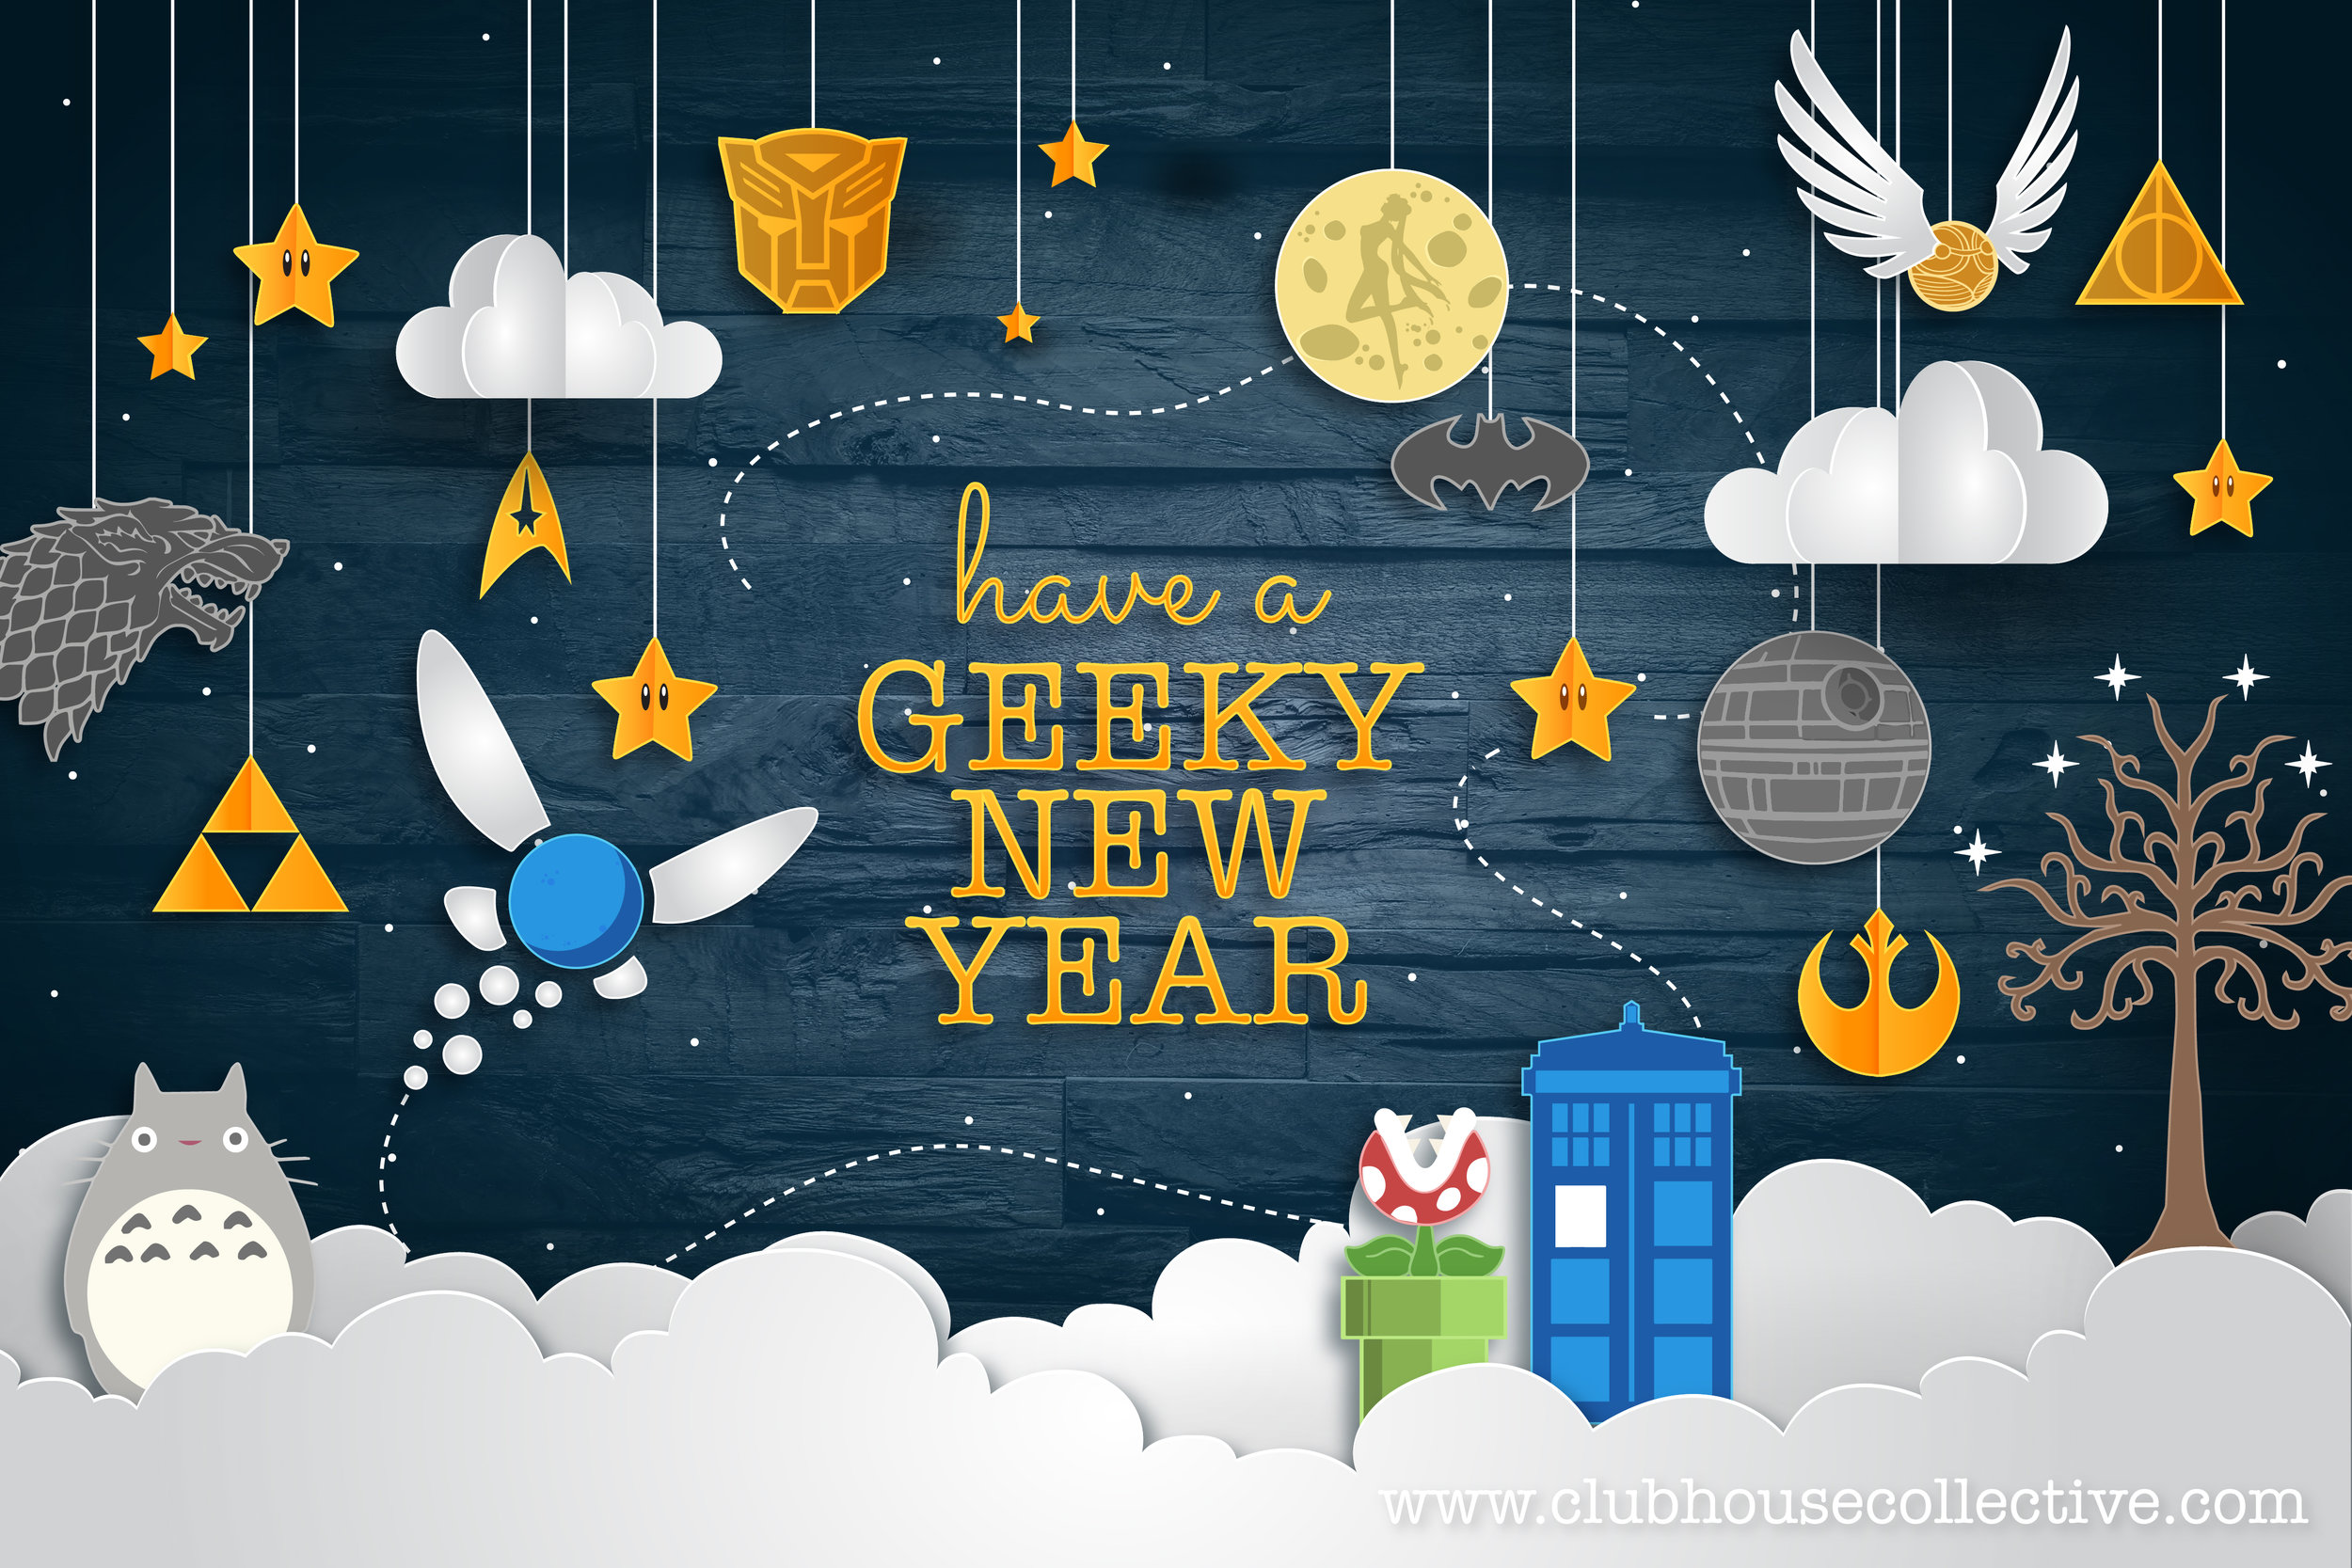 Have a GEEKY NEW YEAR ~ Corinne Jade, ClubHouse Collective